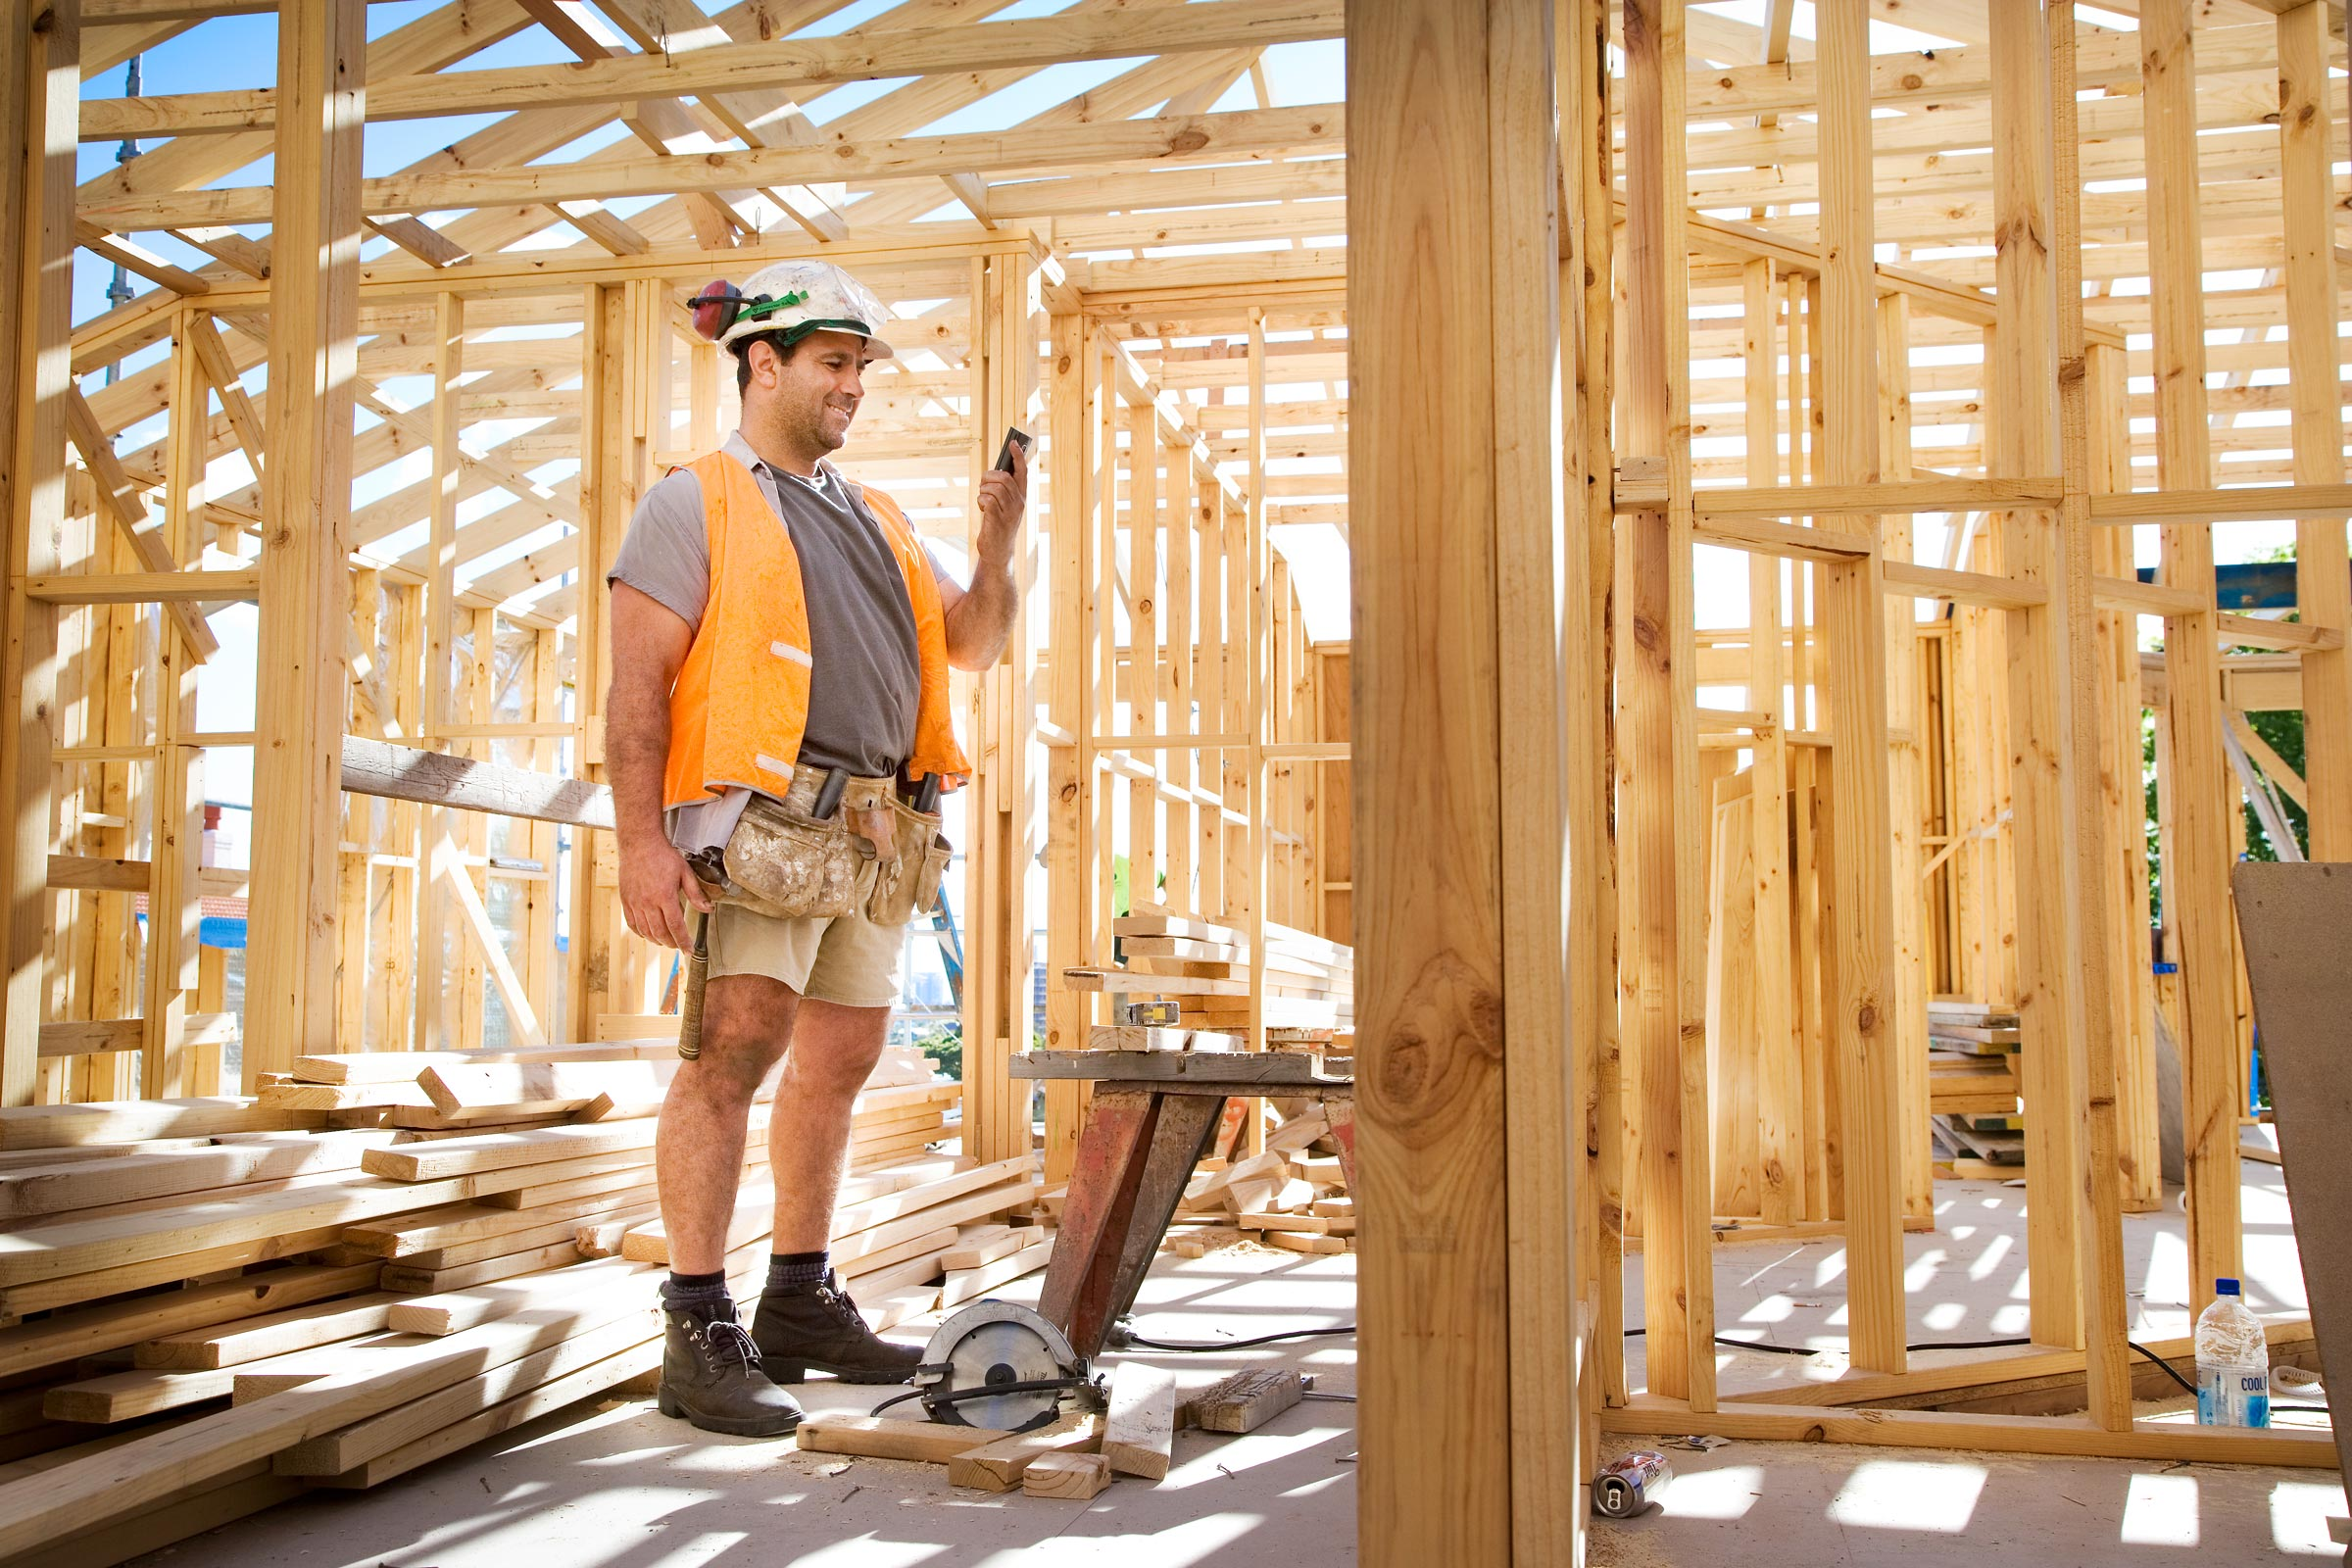 construction worker using phone in house build